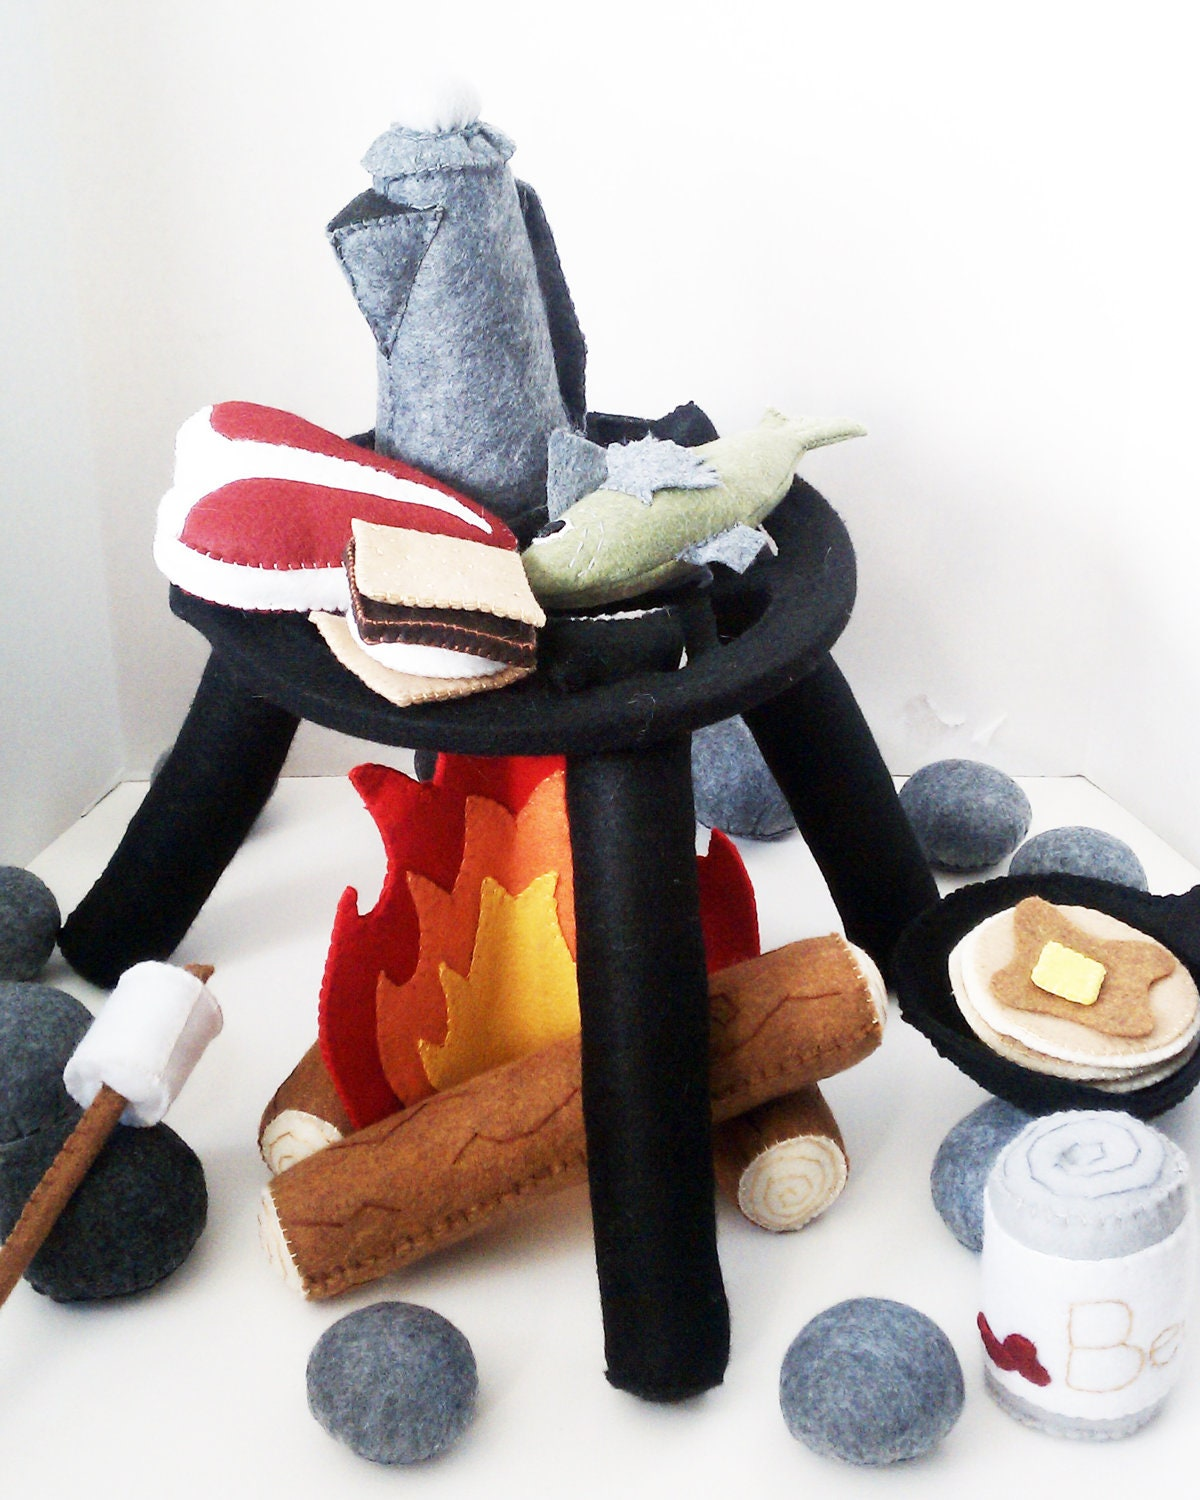 Campfire playset at www.livedreamcreate.com